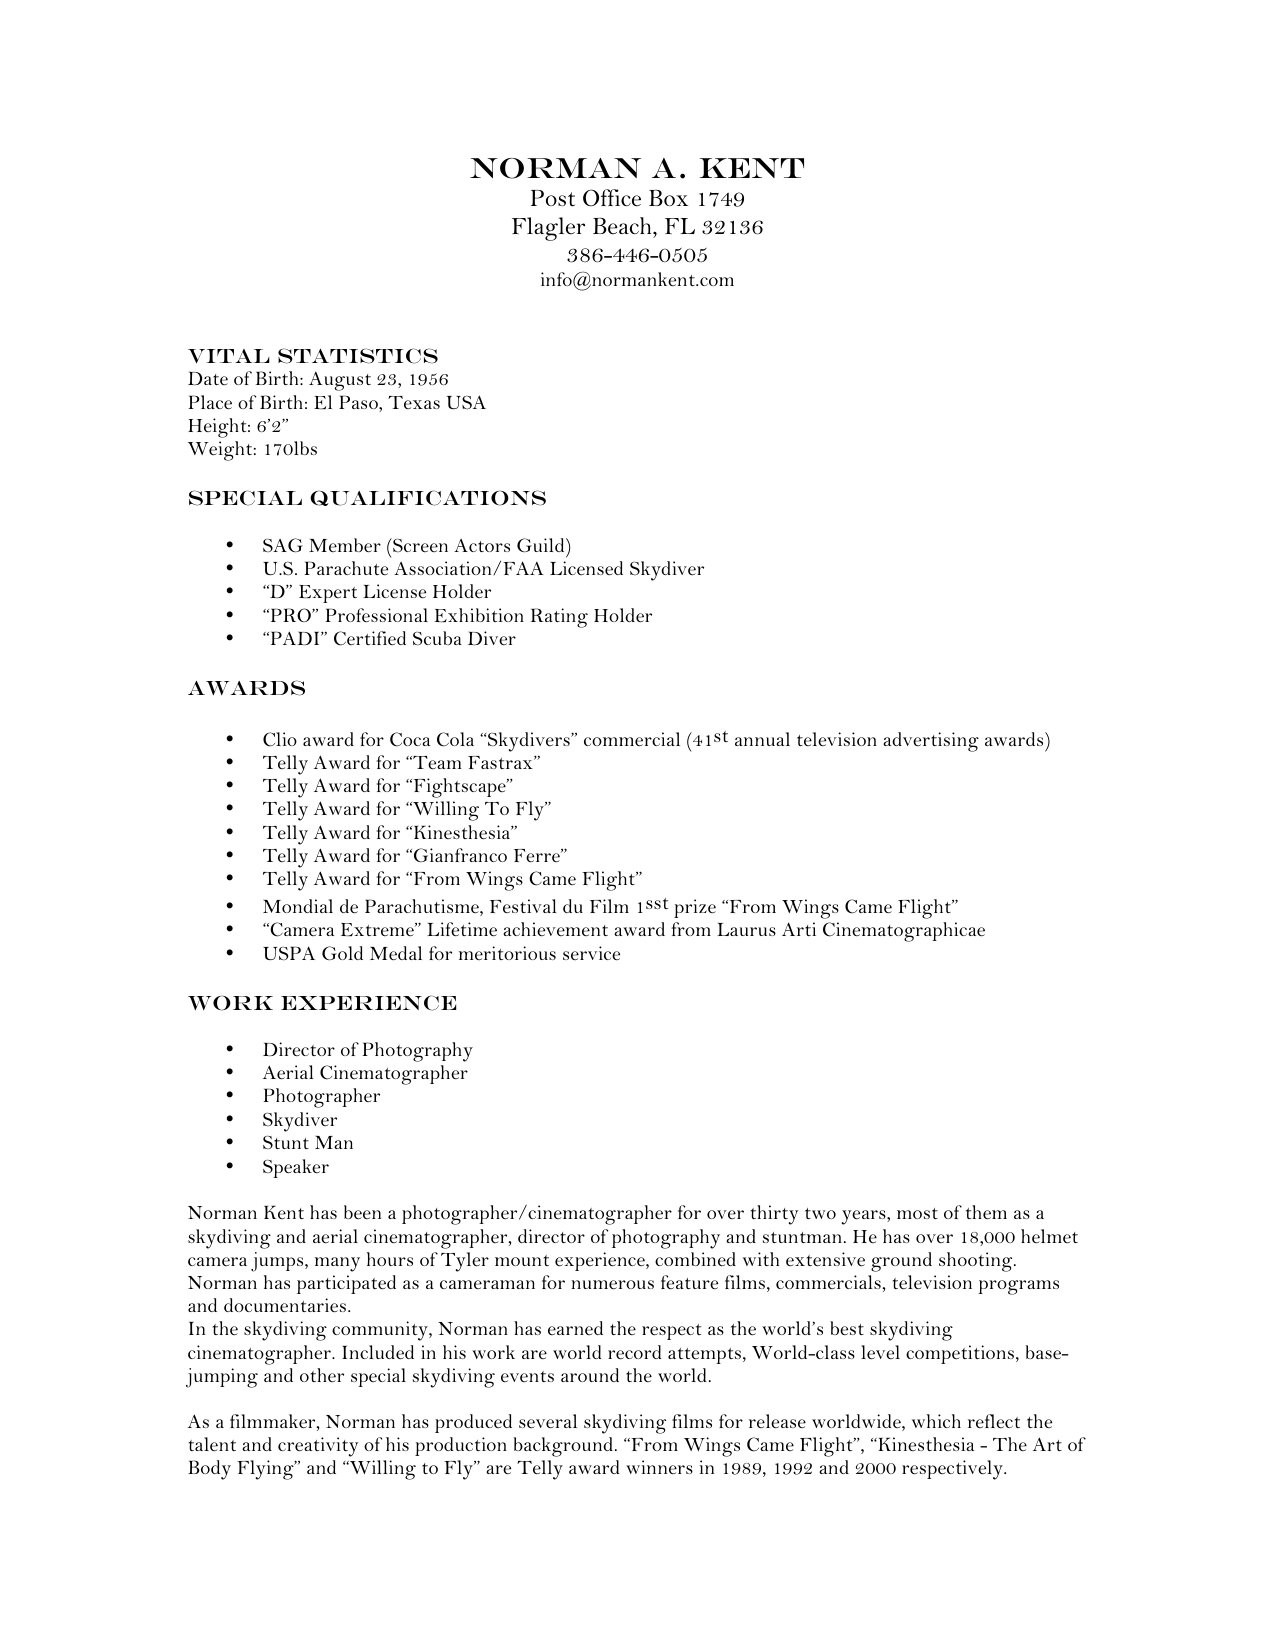 Resume - Norman Kent Productions